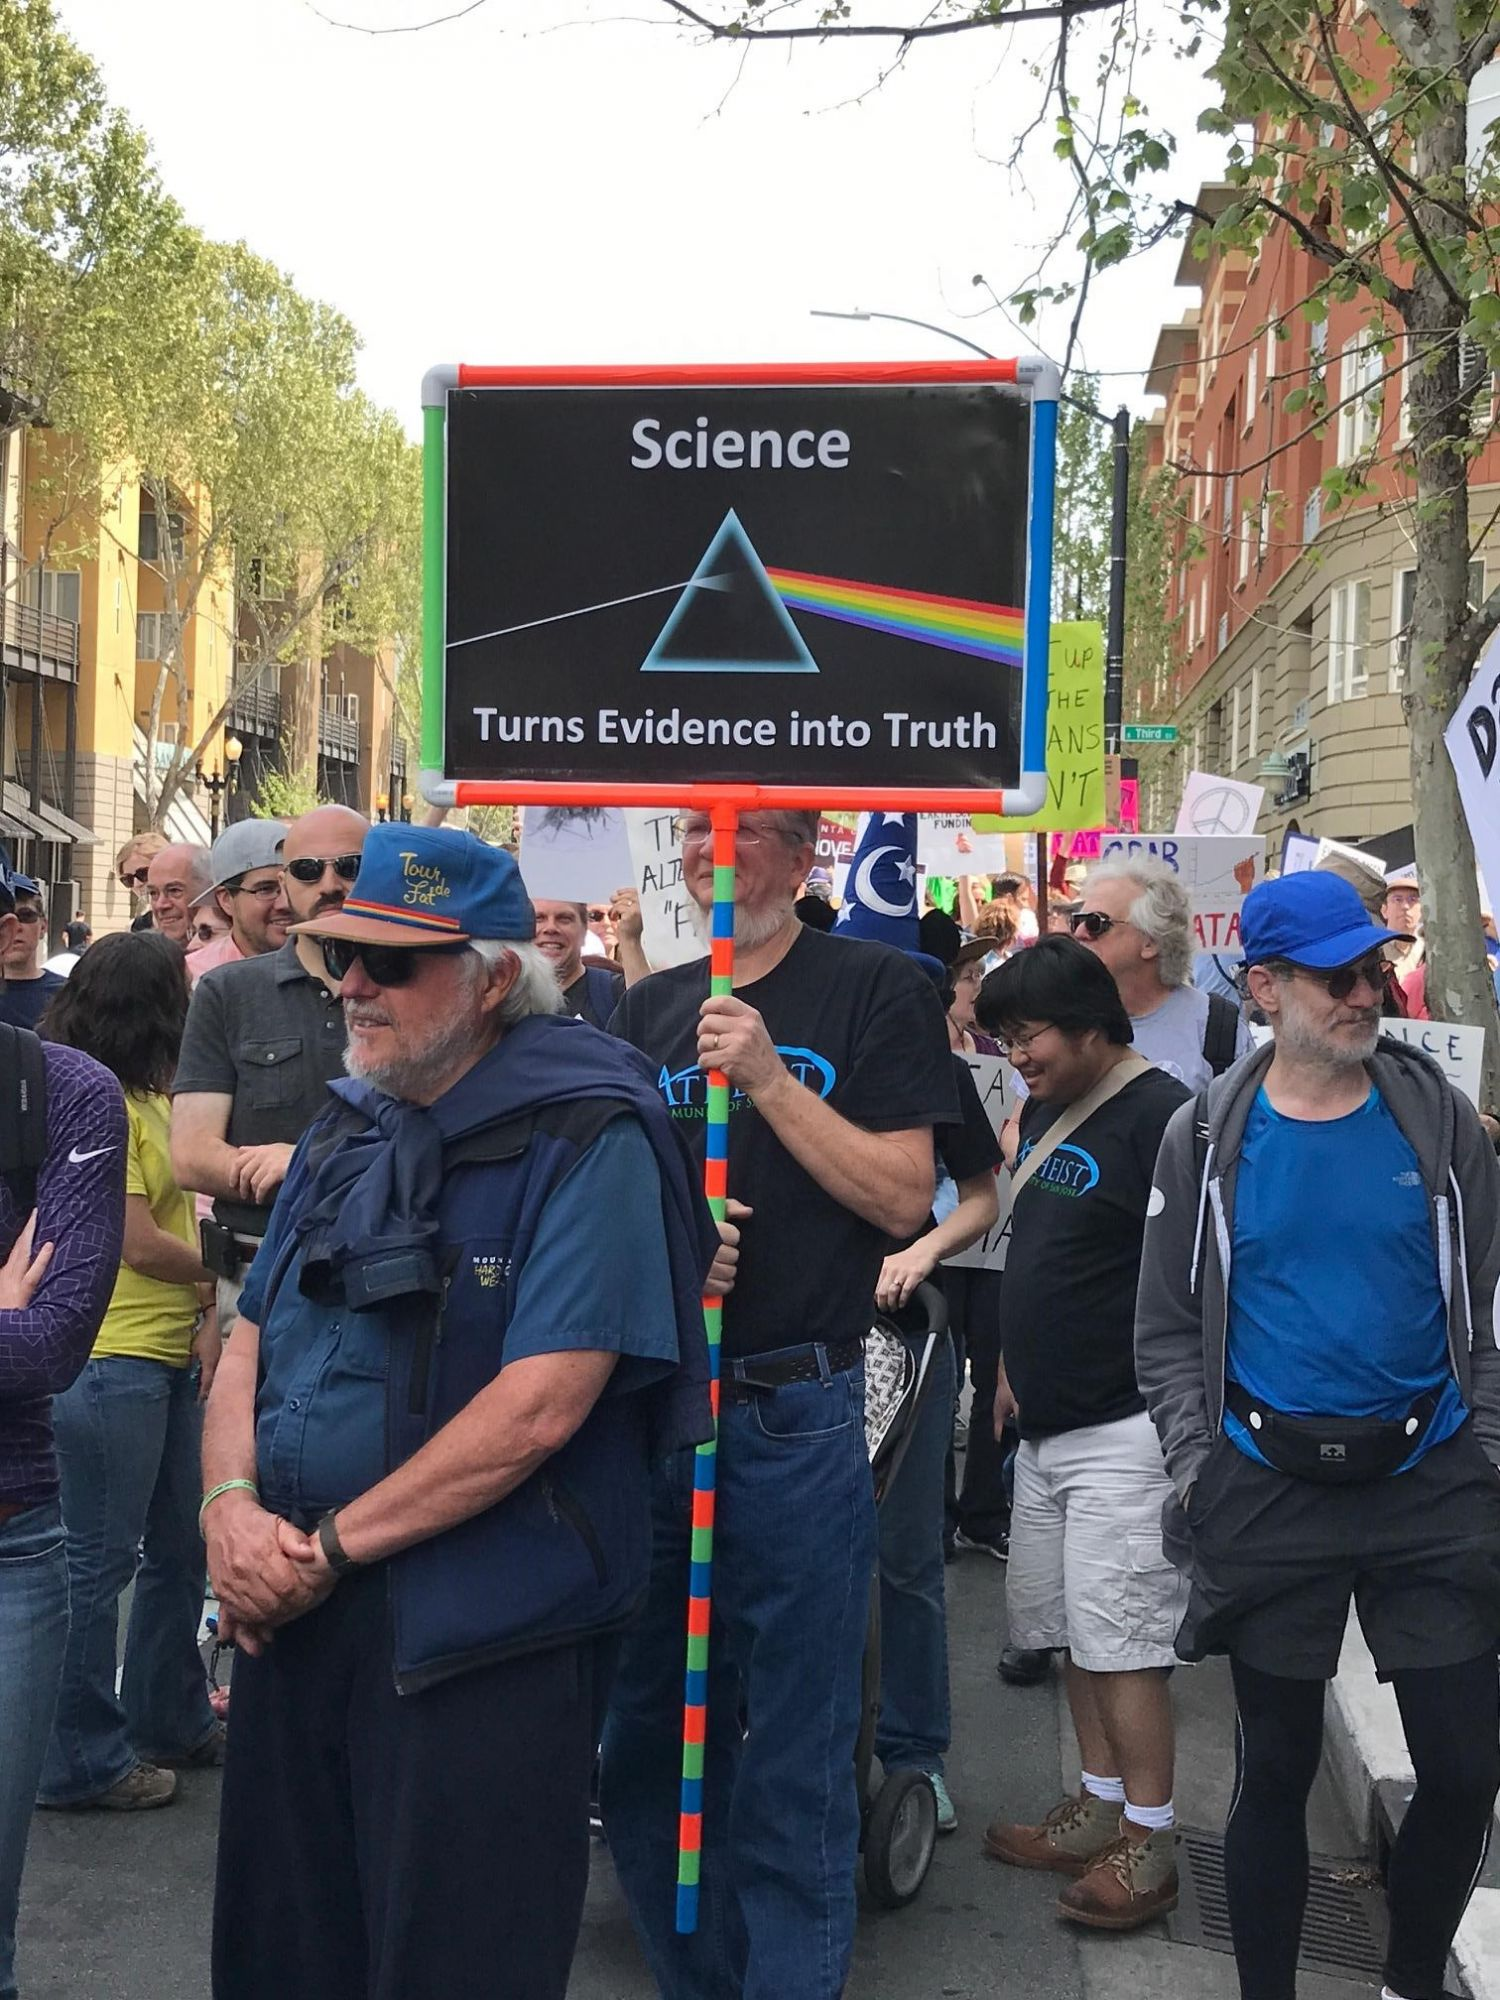 Science Turns Evidence Into Truth